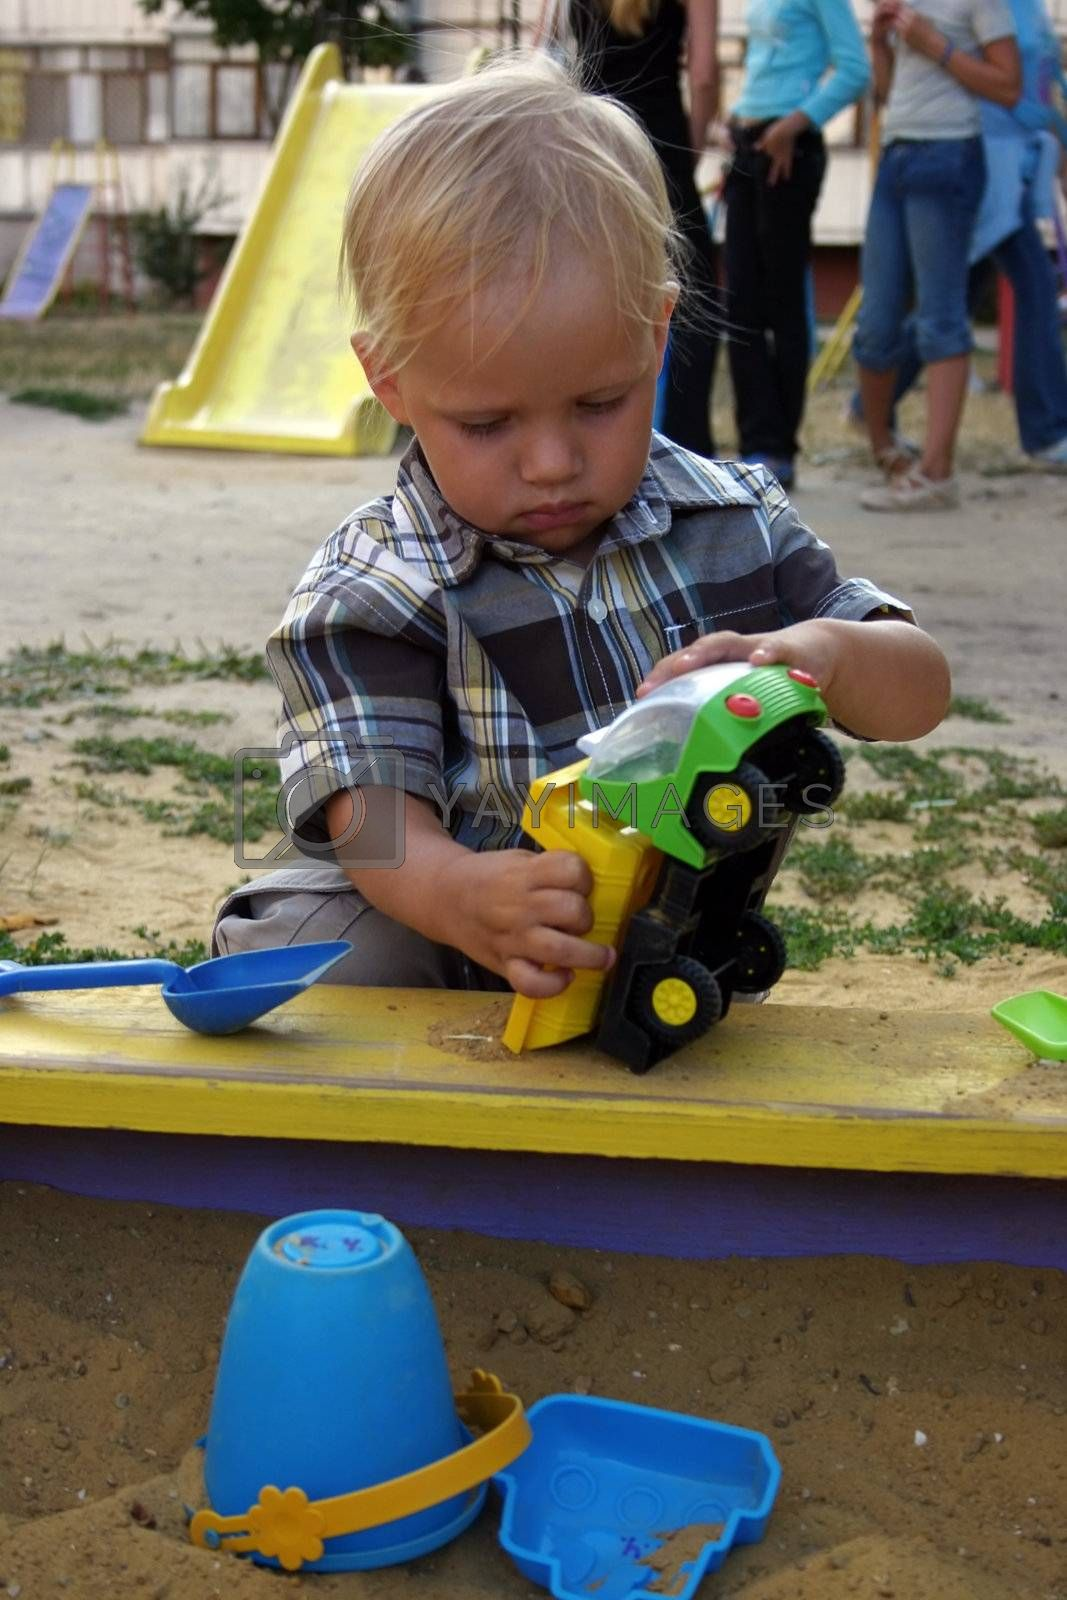 baby boy playing with toy auto in sand box